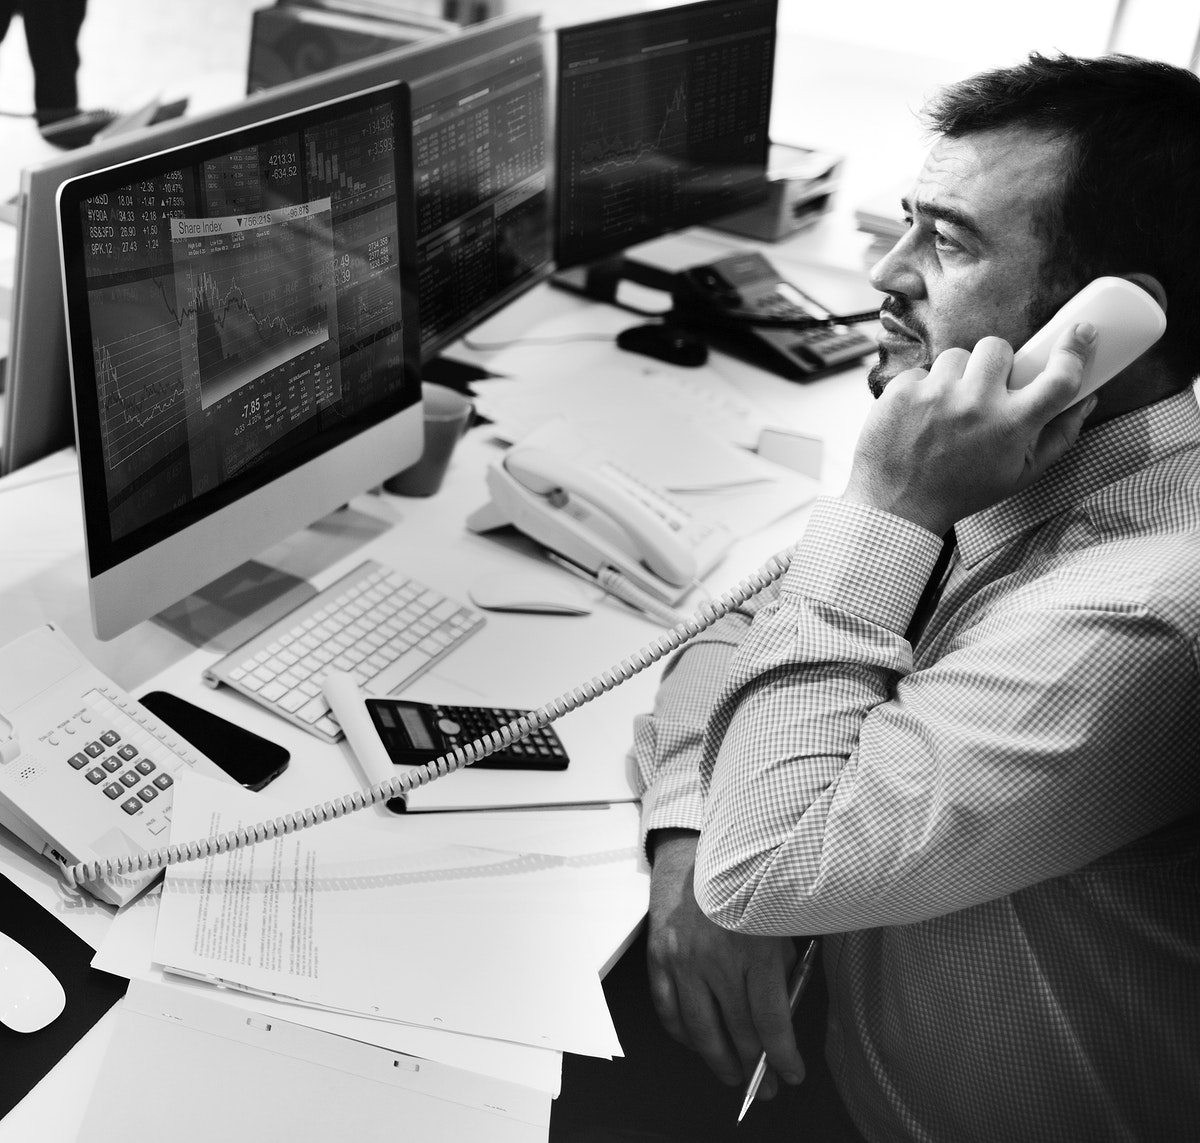 Man talking on the phone looking at stock market analysis on computer screen